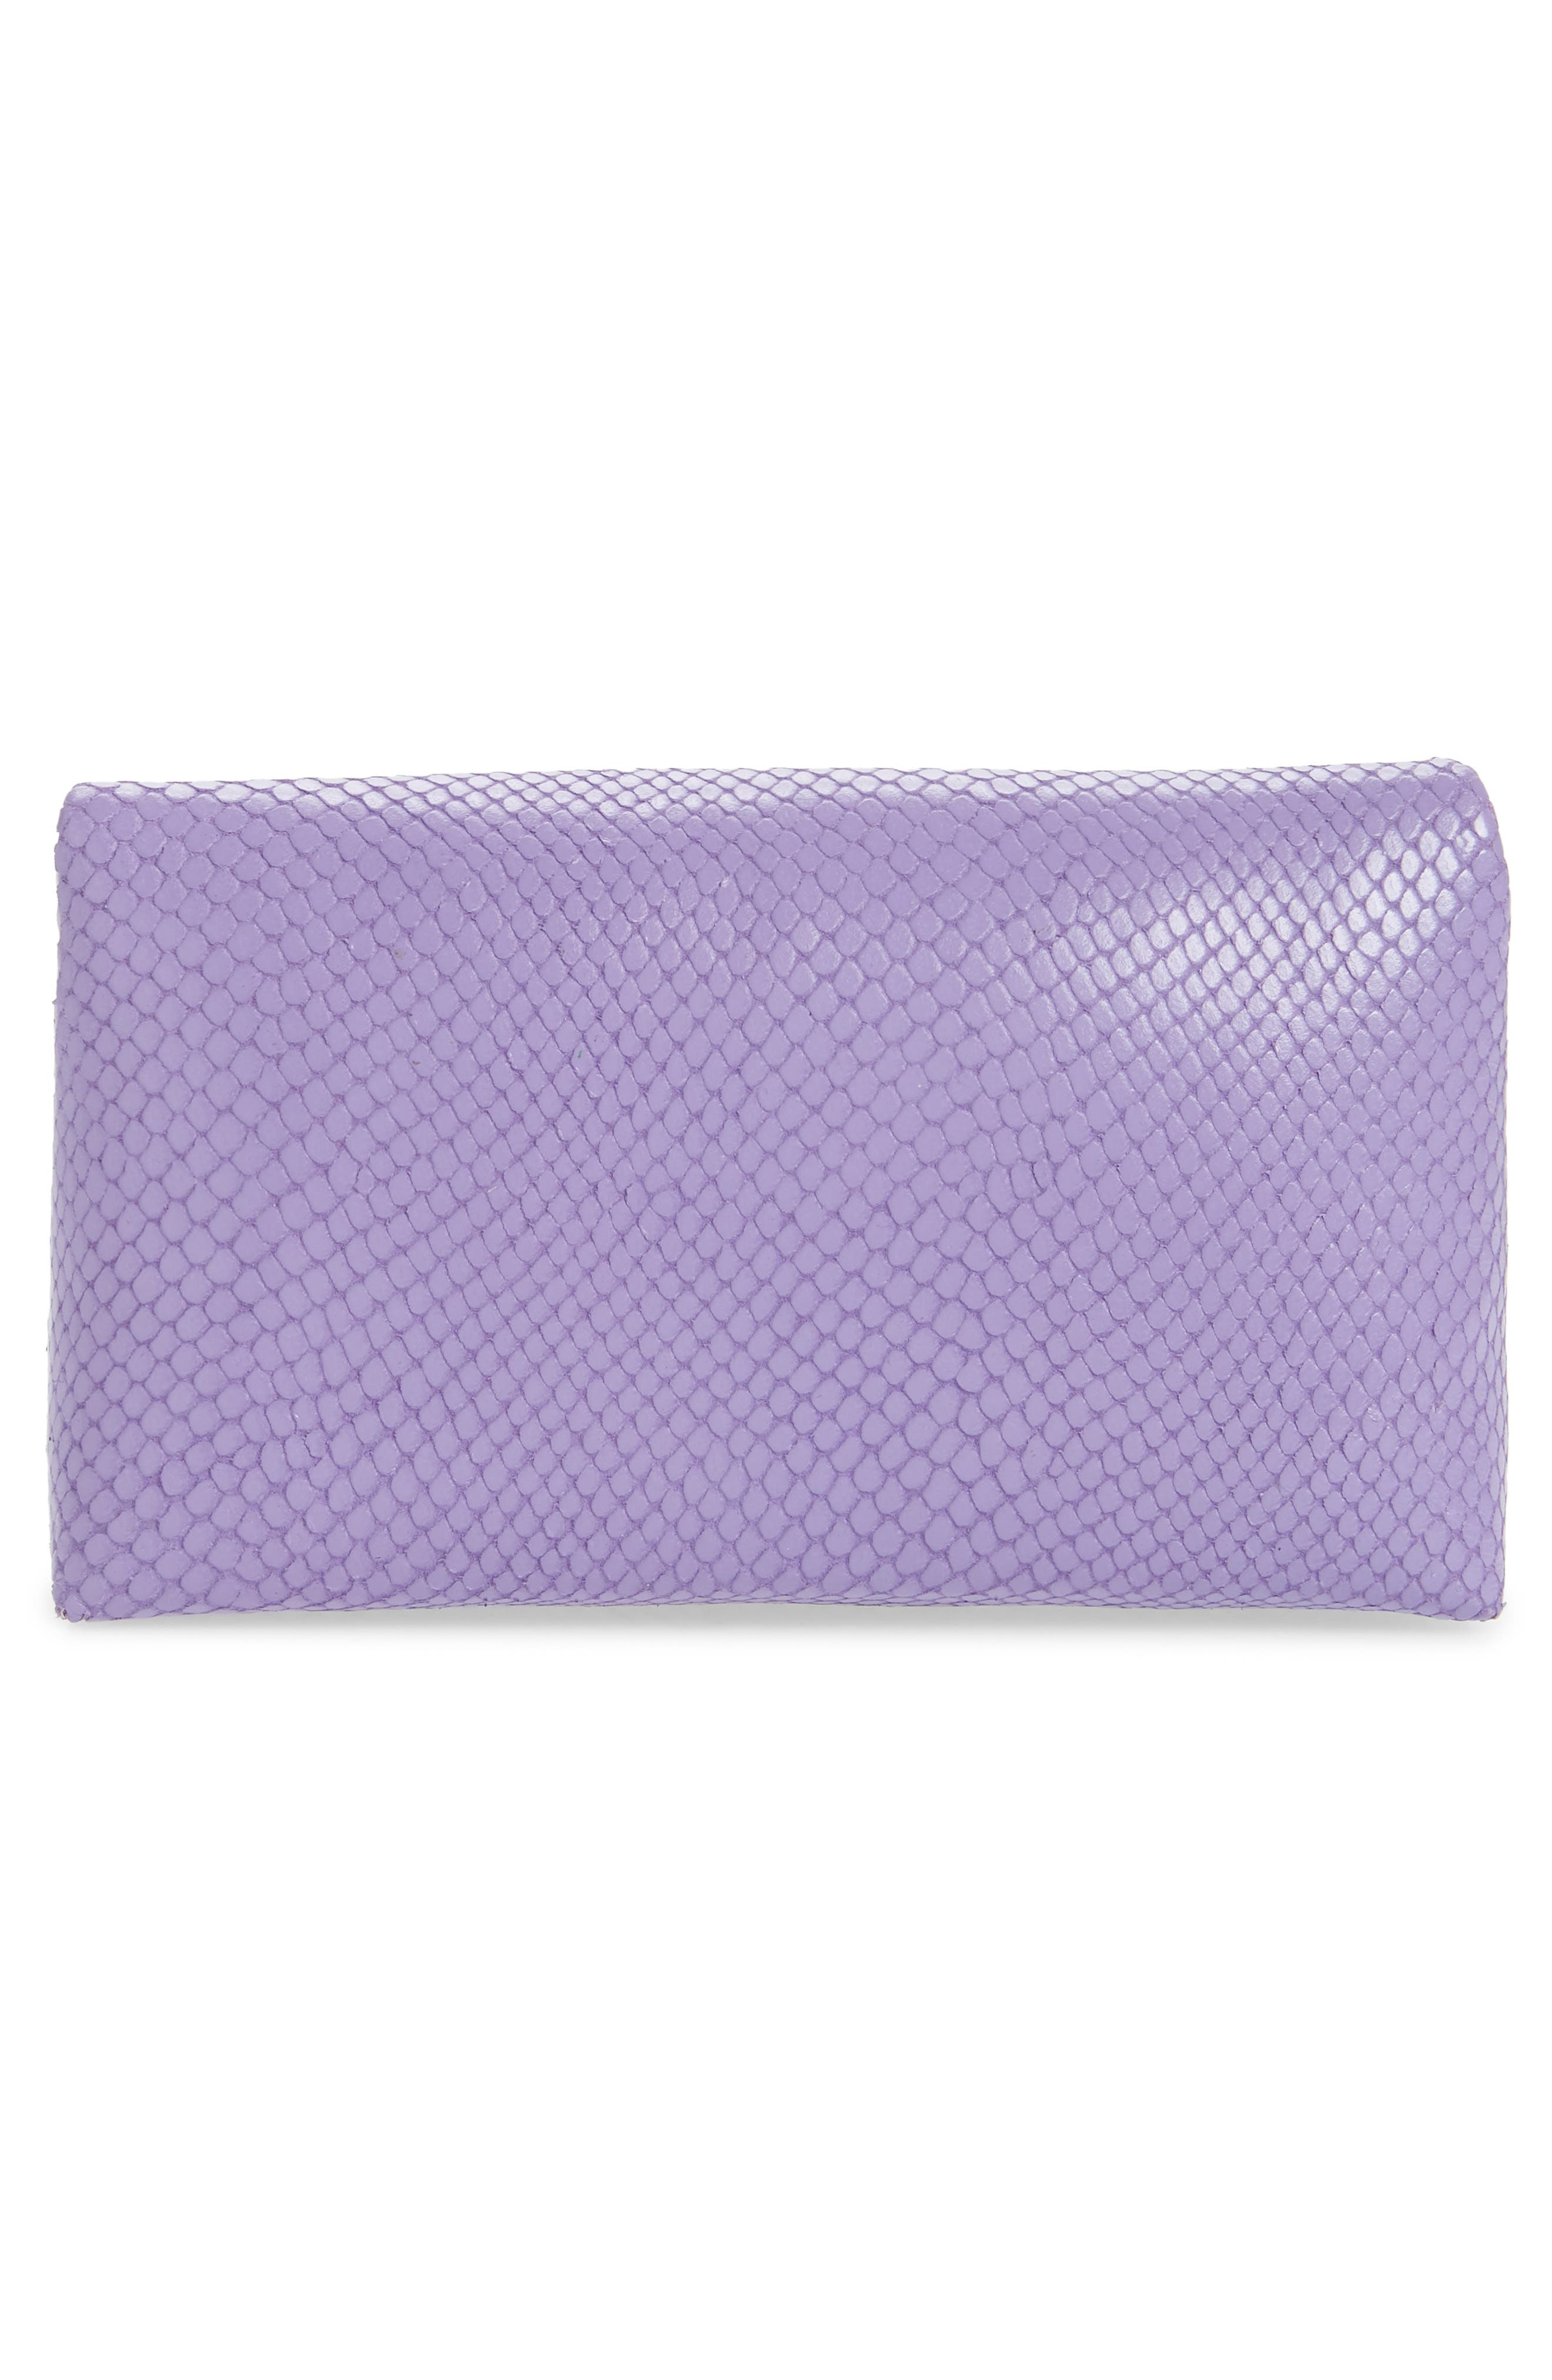 DRIES VAN NOTEN, Small Python Embossed Leather Envelope Clutch, Alternate thumbnail 3, color, LILAC